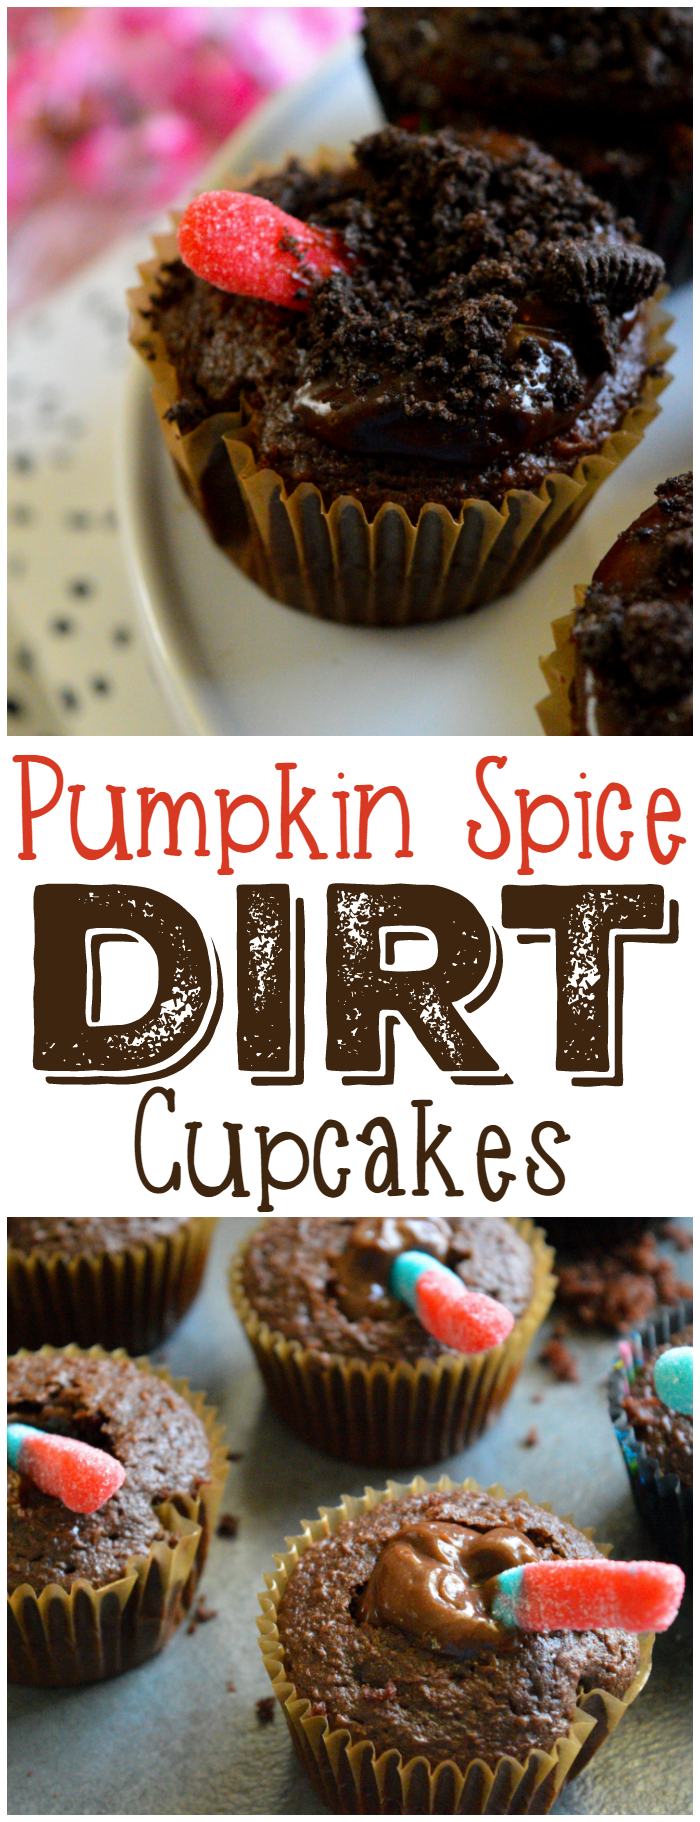 Pumpkin Spice Dirt Cupcakes are a great addition to your fall party menu! Kids can help make them, too!